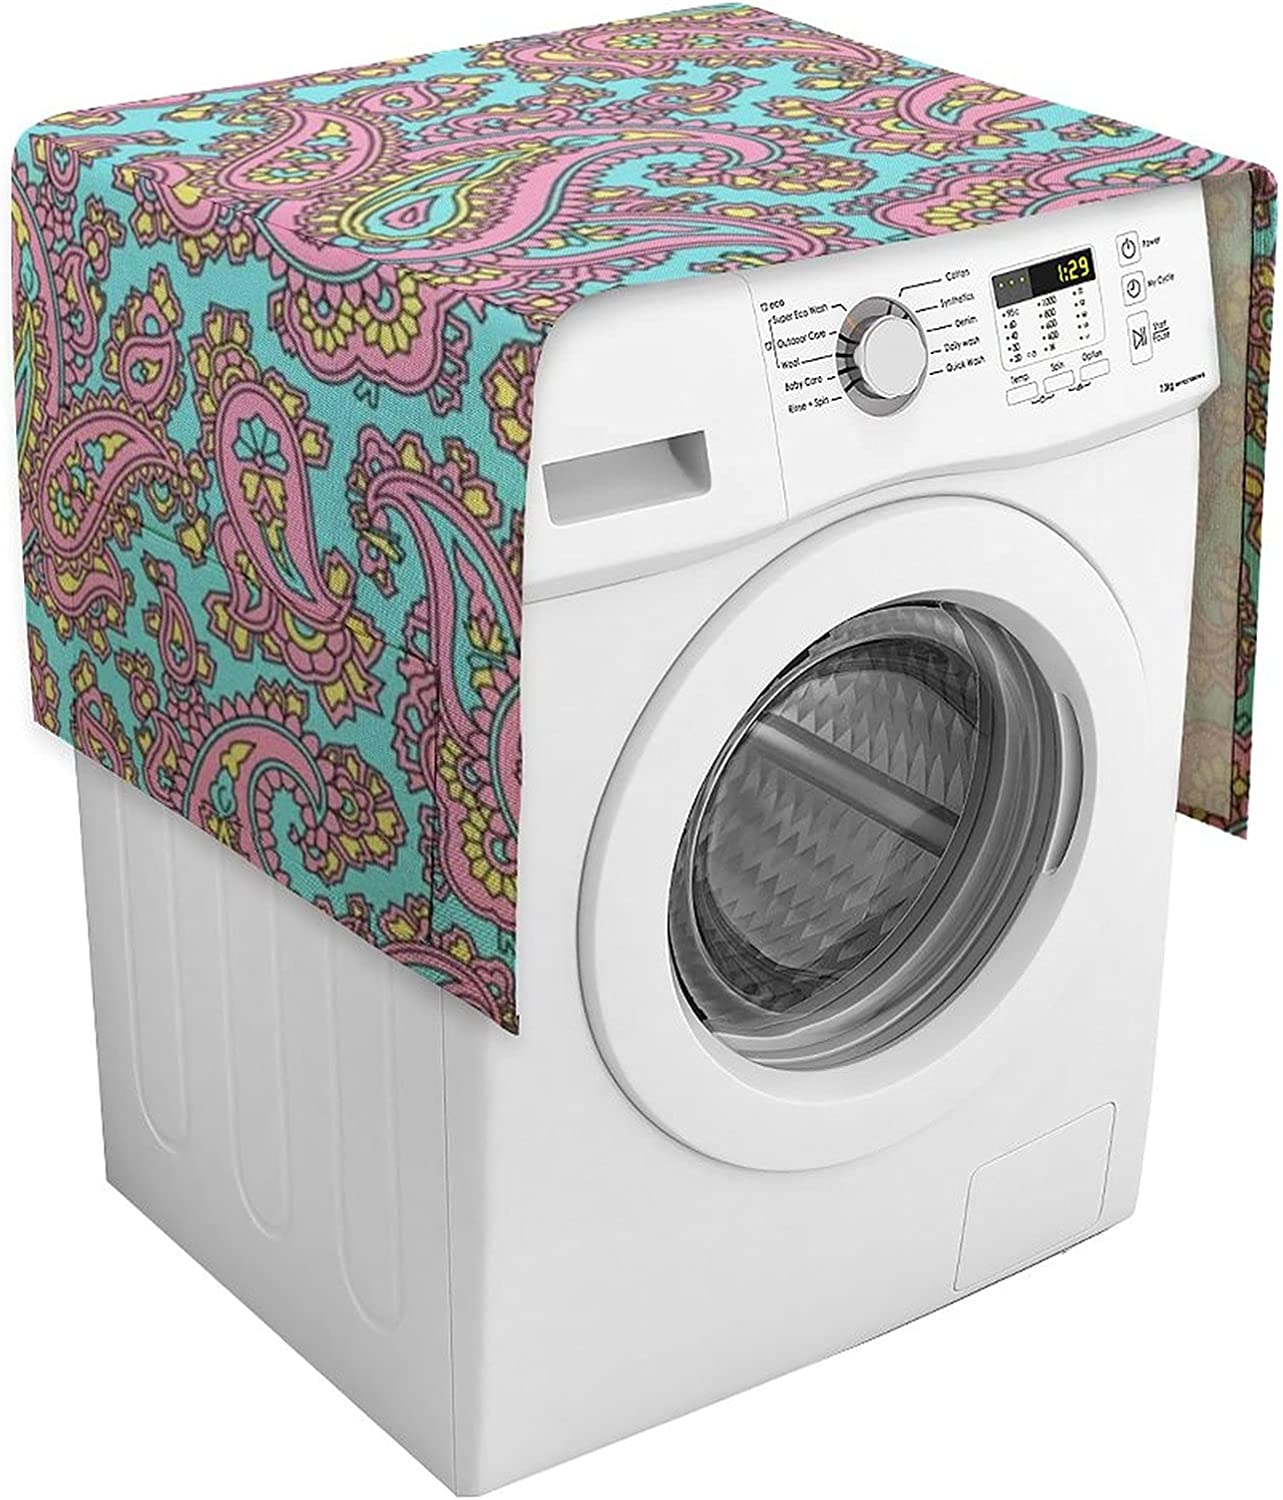 Multi-Purpose Washing Machine Popular Covers Appliance Our shop OFFers the best service Washer Protector